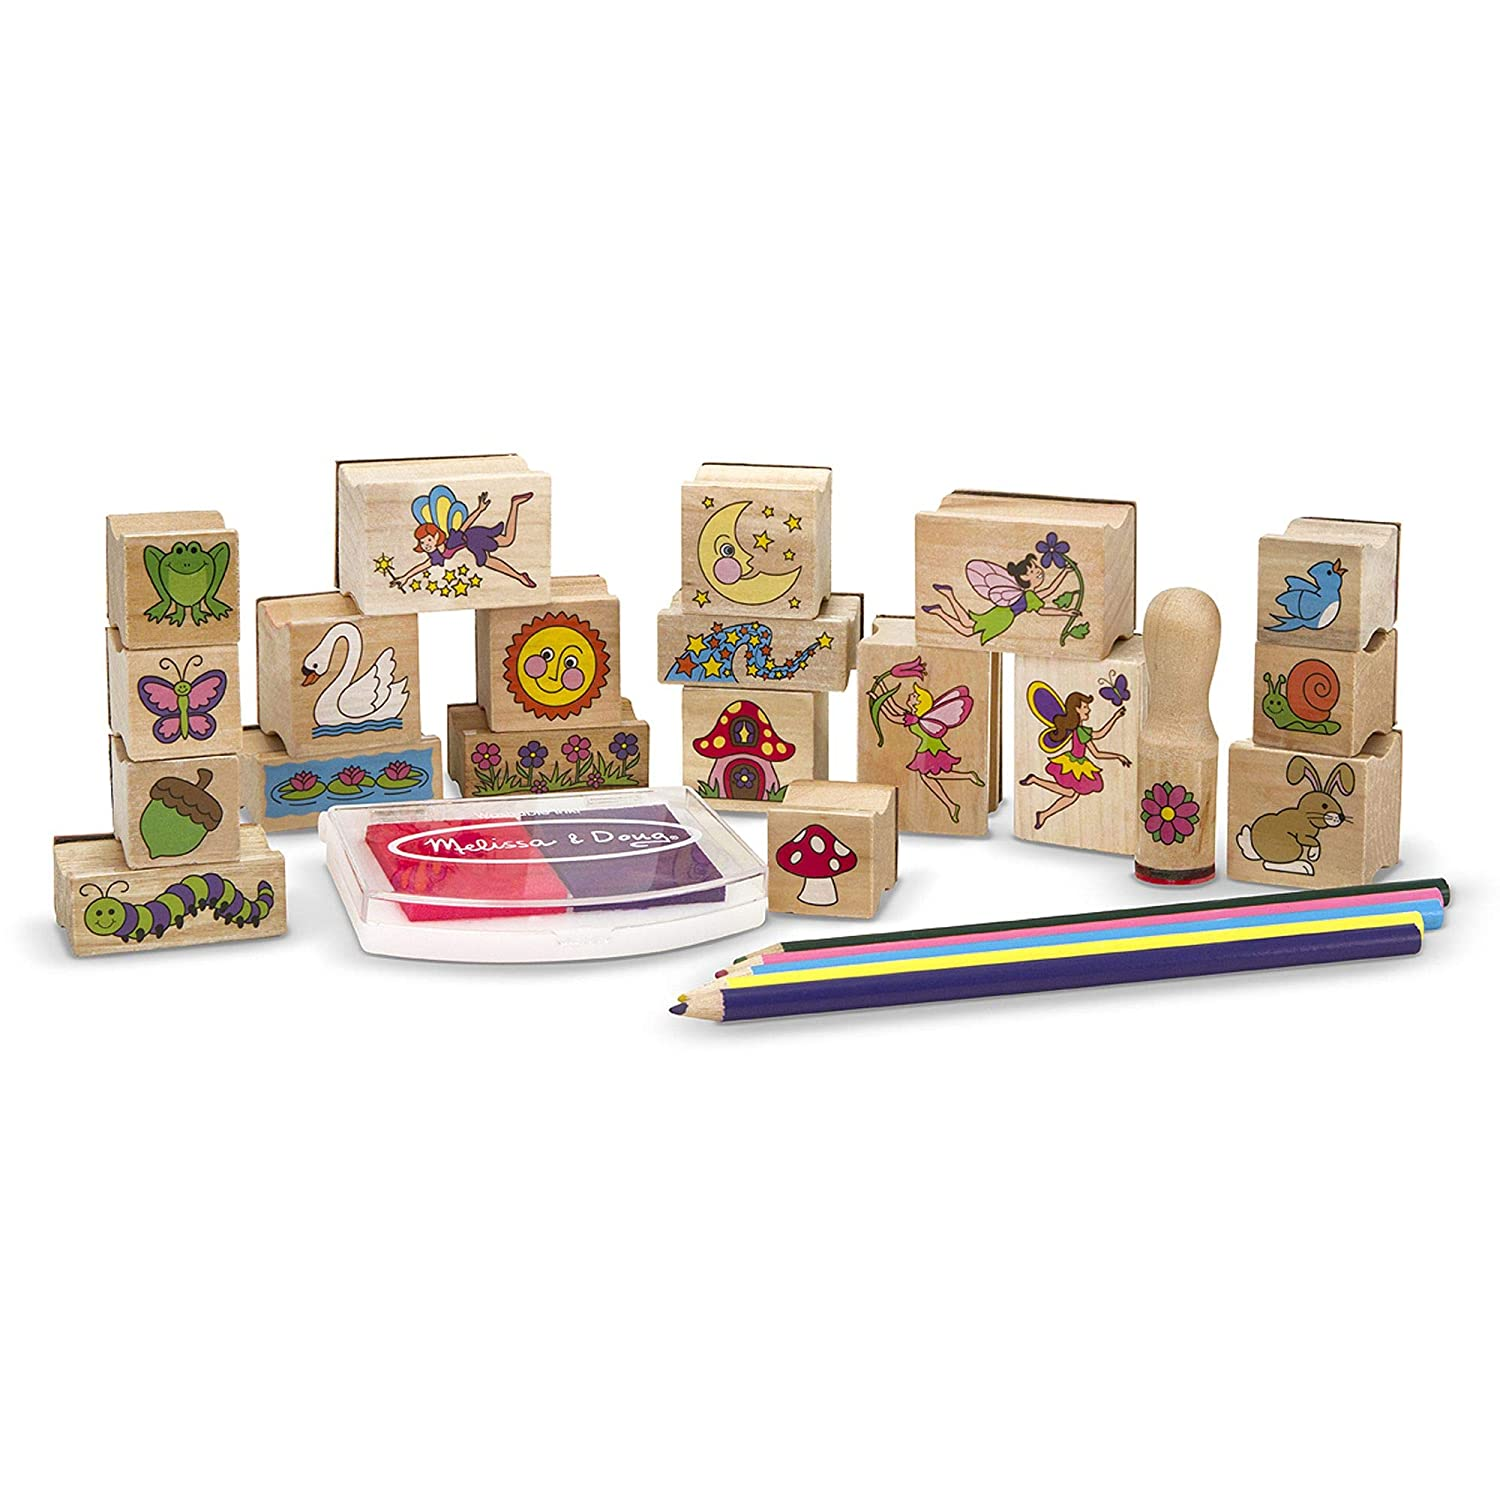 "Melissa & Doug Stamp-a-Scene Wooden Stamp Set: Fairy Garden, 20 Wooden Stamps, 5 Colored Pencils, and 2-Color Stamp Pad, 10.5"" H x 11.25"" W x 1.5"" L"